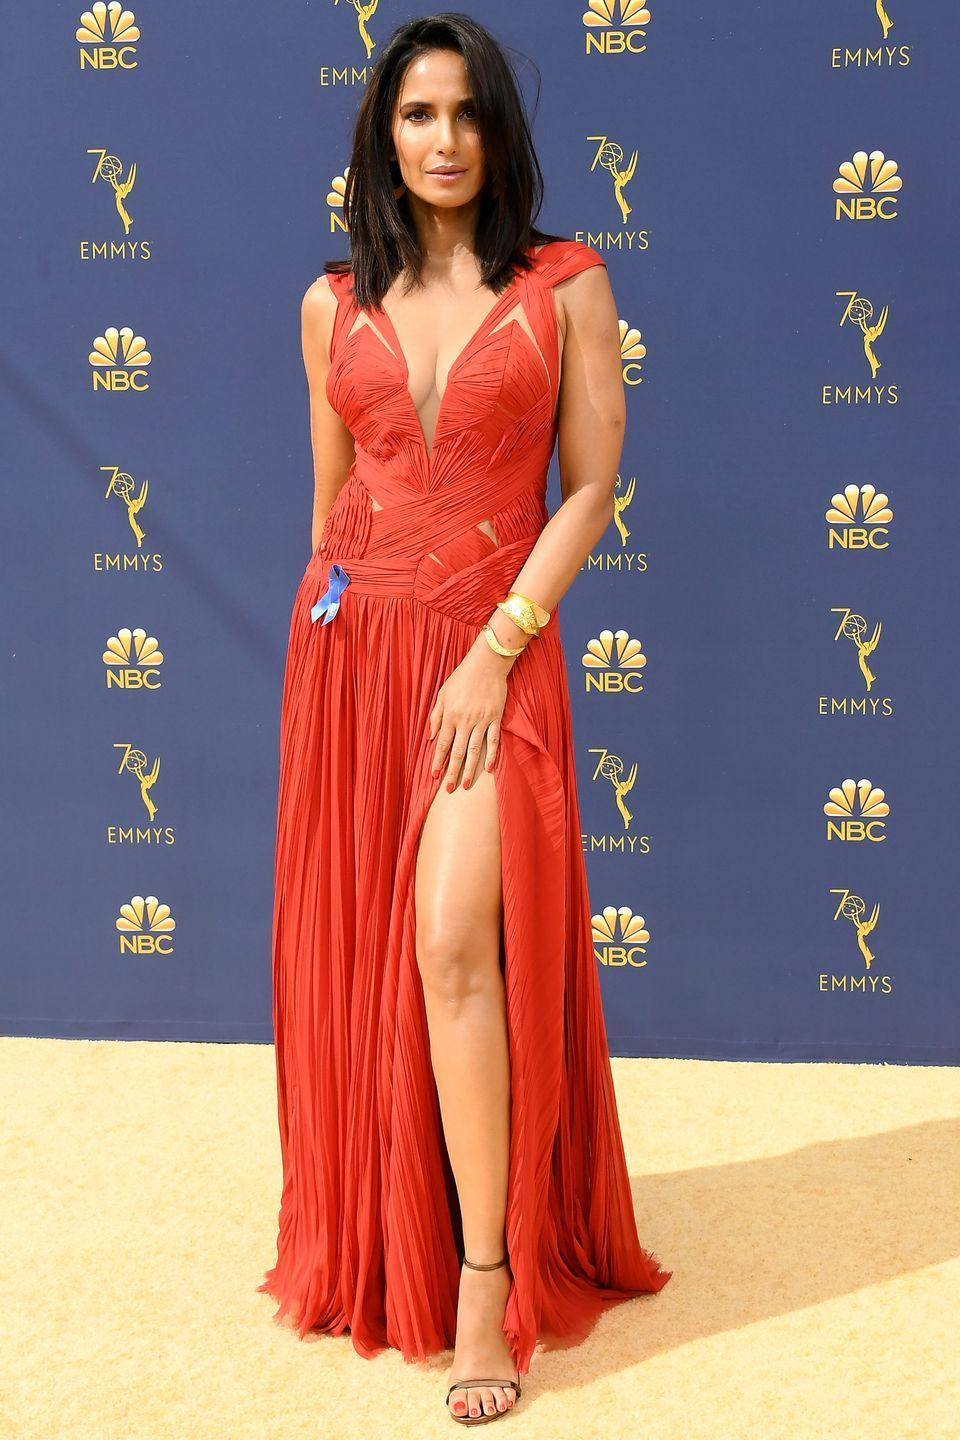 <p>The <em>Top Chef </em>host wore this plunging v-neck gown by designer J. Mendel to the awards show last year. The fiery red bodice featured tiny cutouts along Padma's torso.</p>